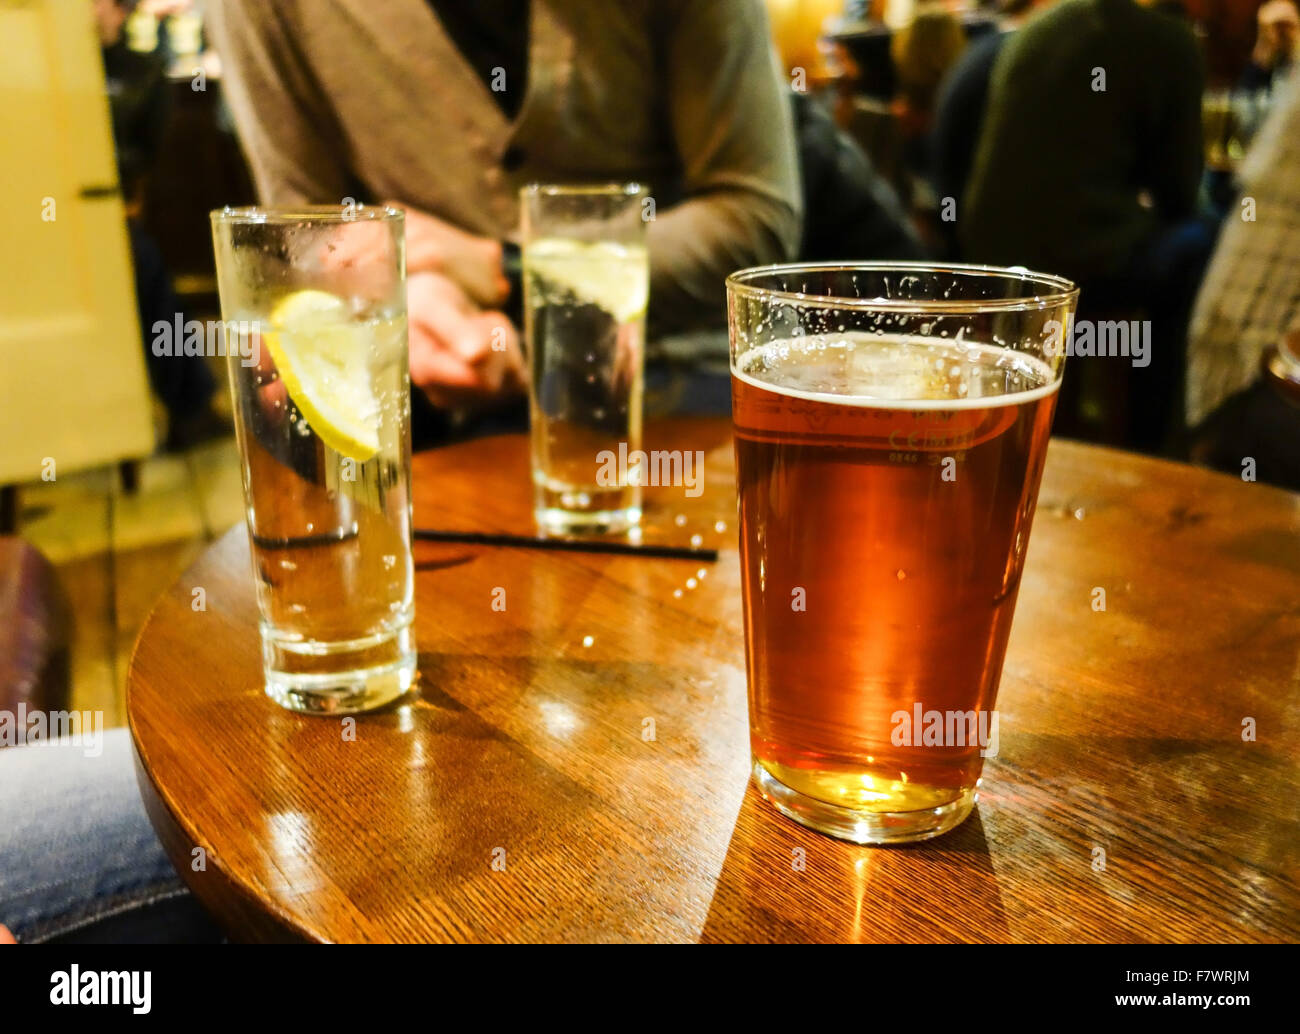 A pint of beer and 2 soft drinks on a pub table - Stock Image